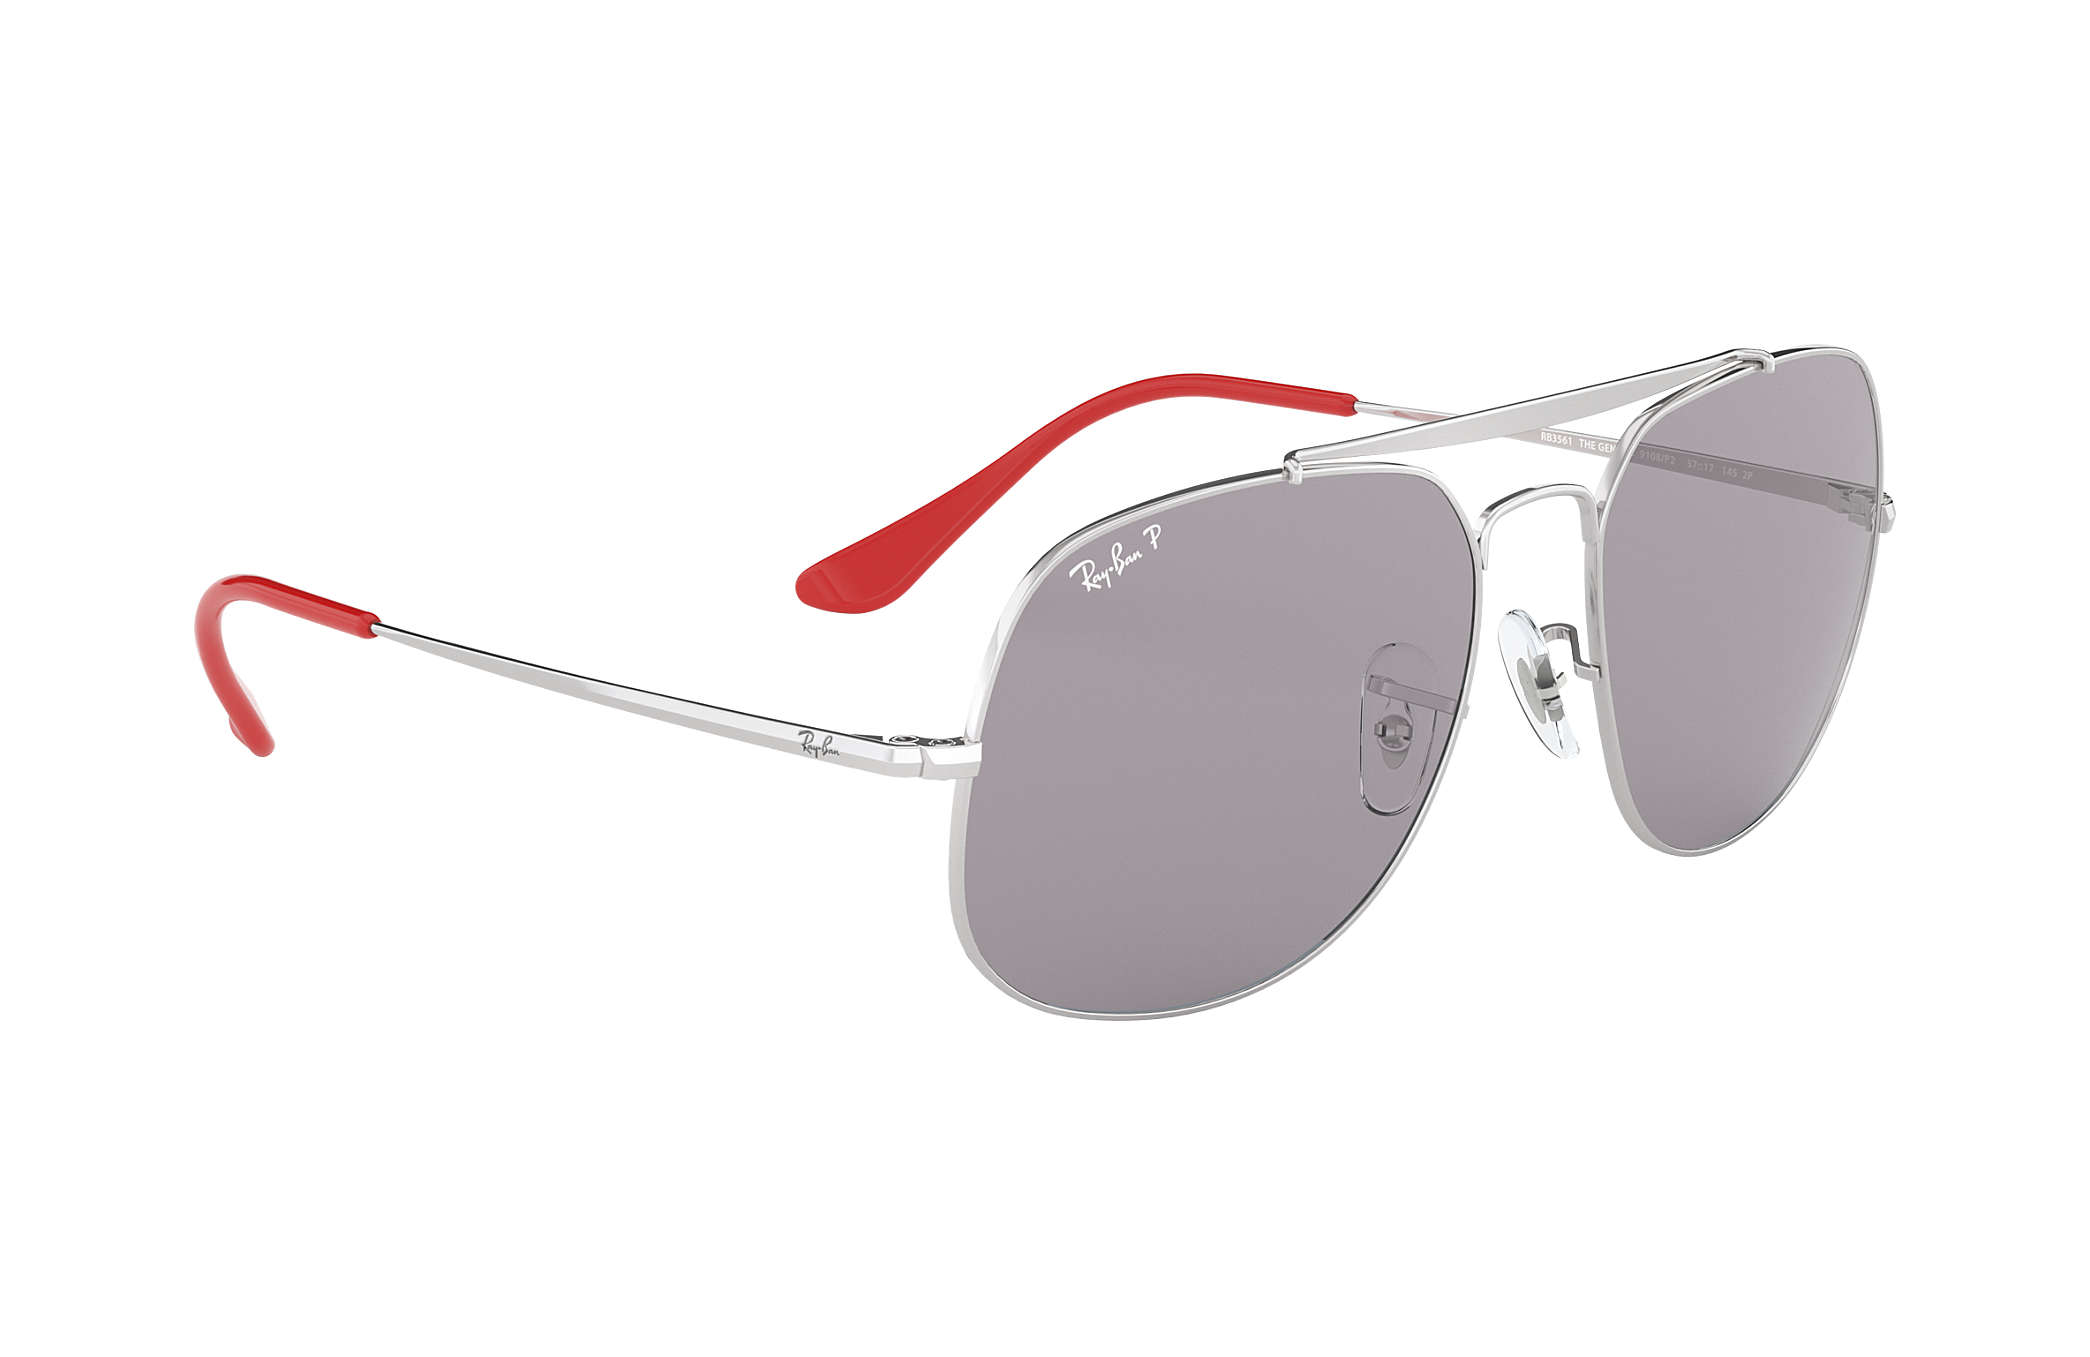 b549946882 Ray-Ban General Pop RB3561 Silver - Metal - Grey Polarized Lenses ...